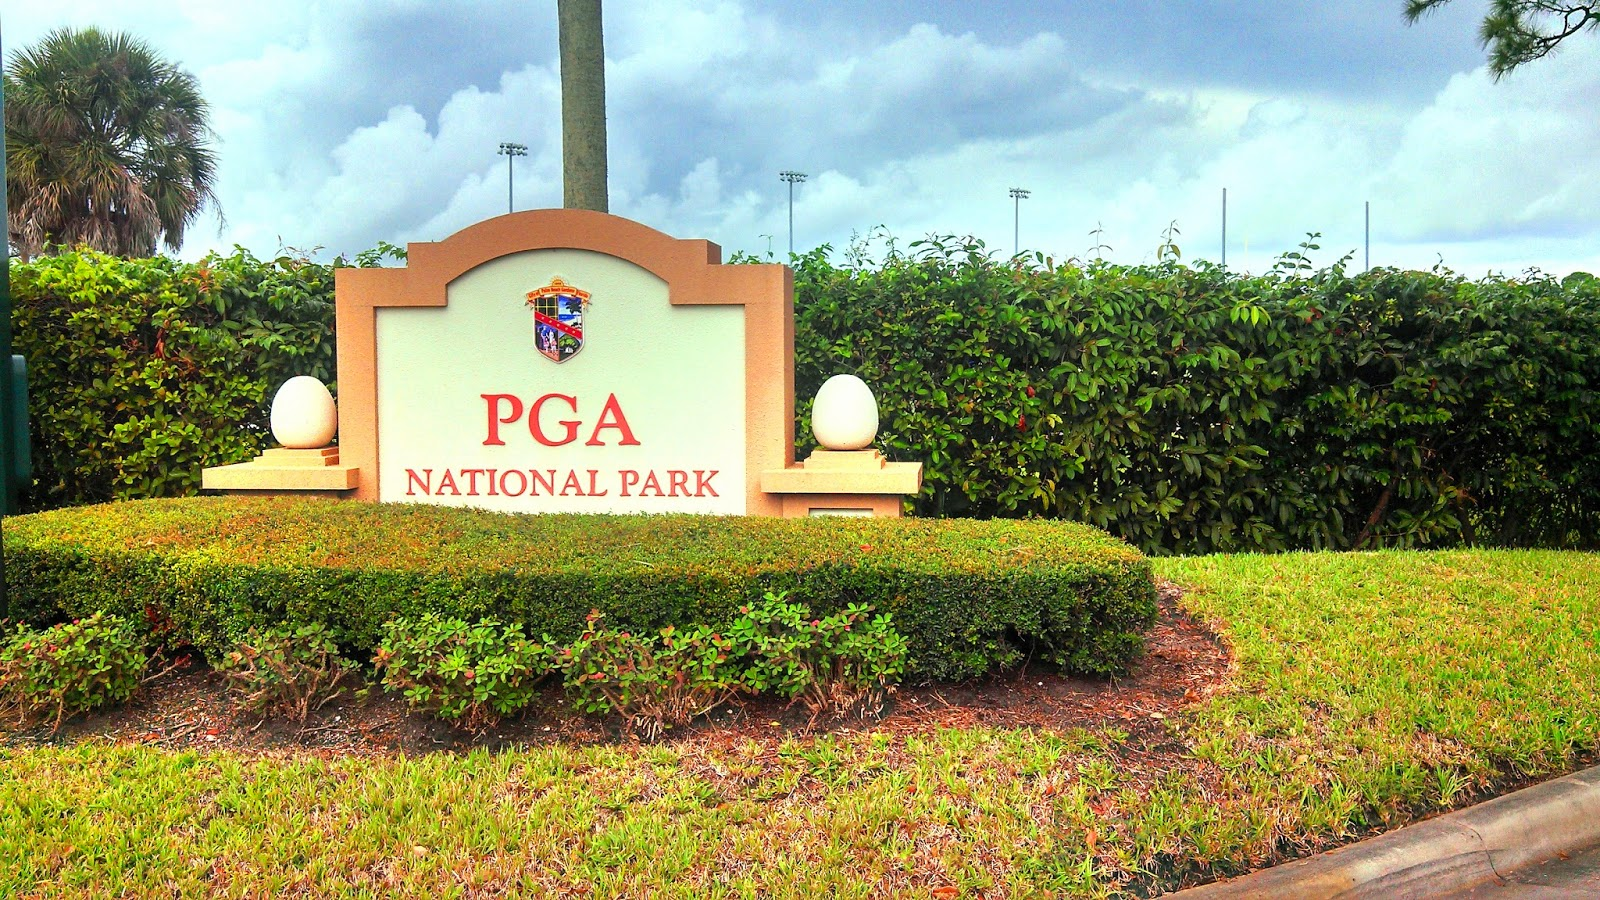 Palm Beaches Blogger: PGA National Park in Palm Beach Gardens, FL 33418